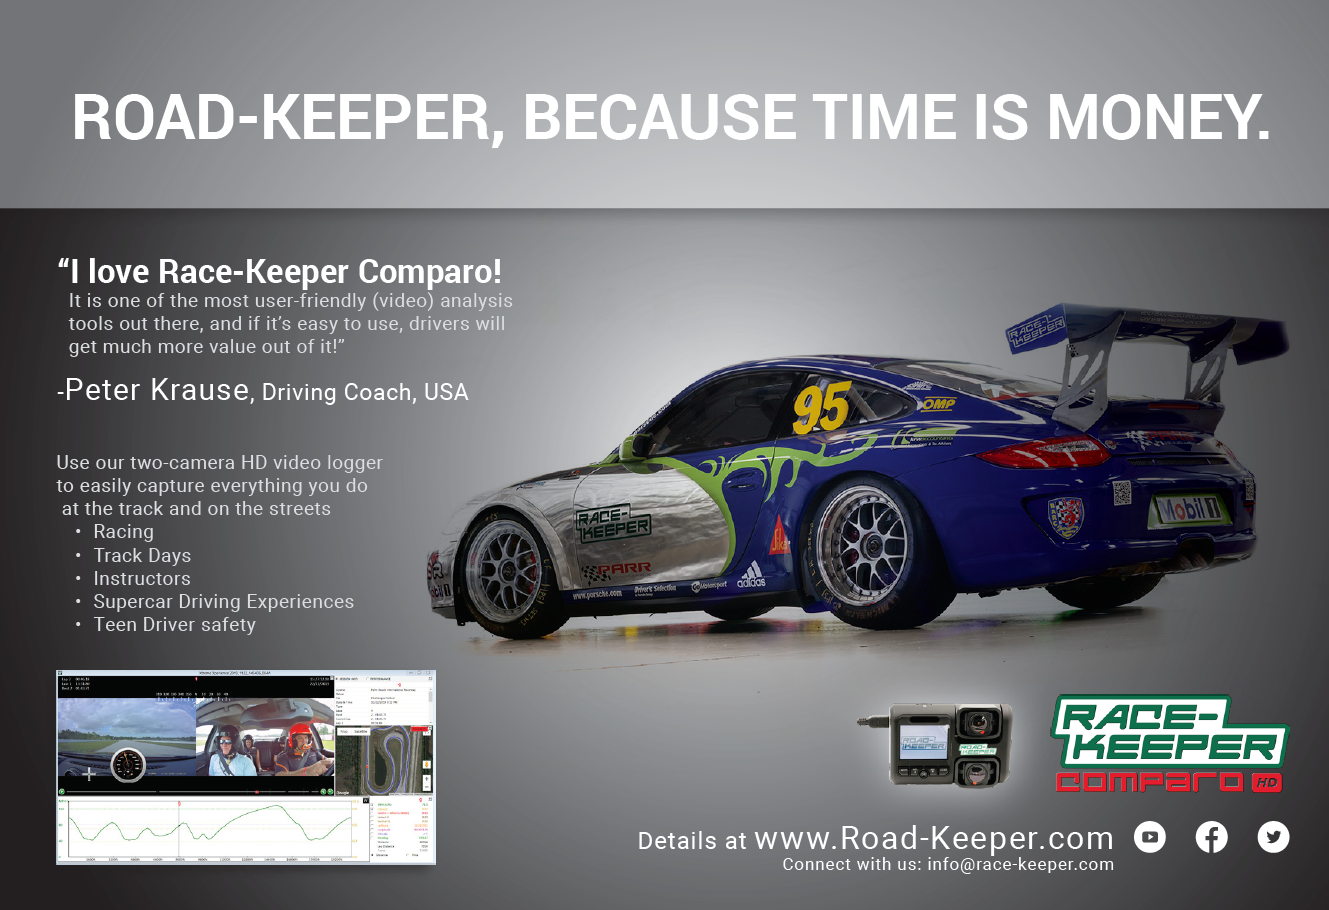 Road-Keeper, Because Time is Money